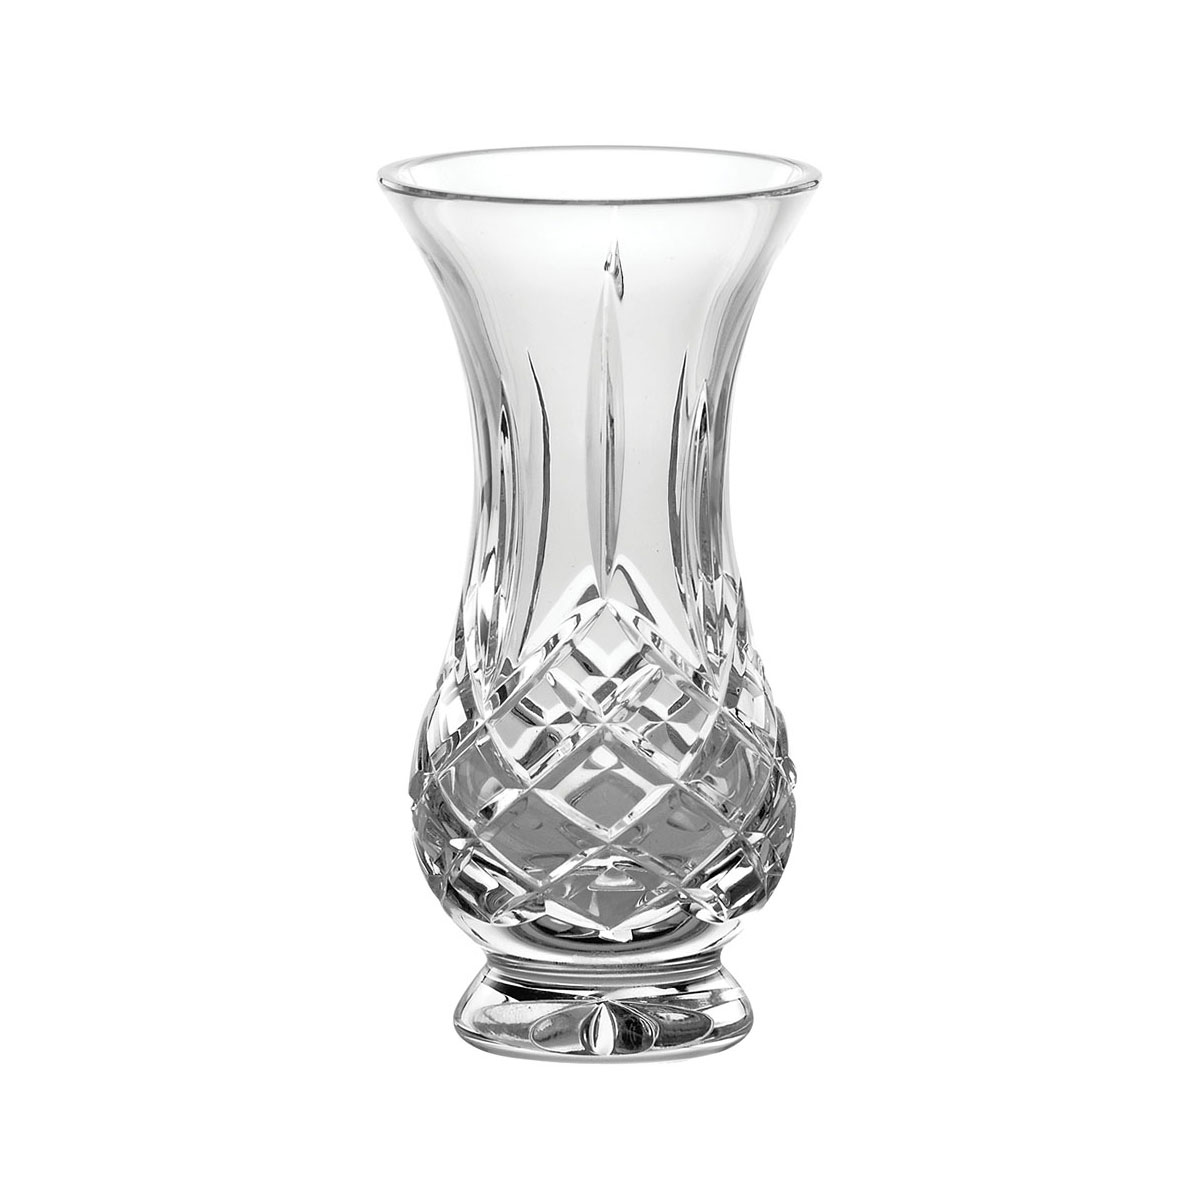 "Galway Crystal Longford 5"" Footed Bud Vase"